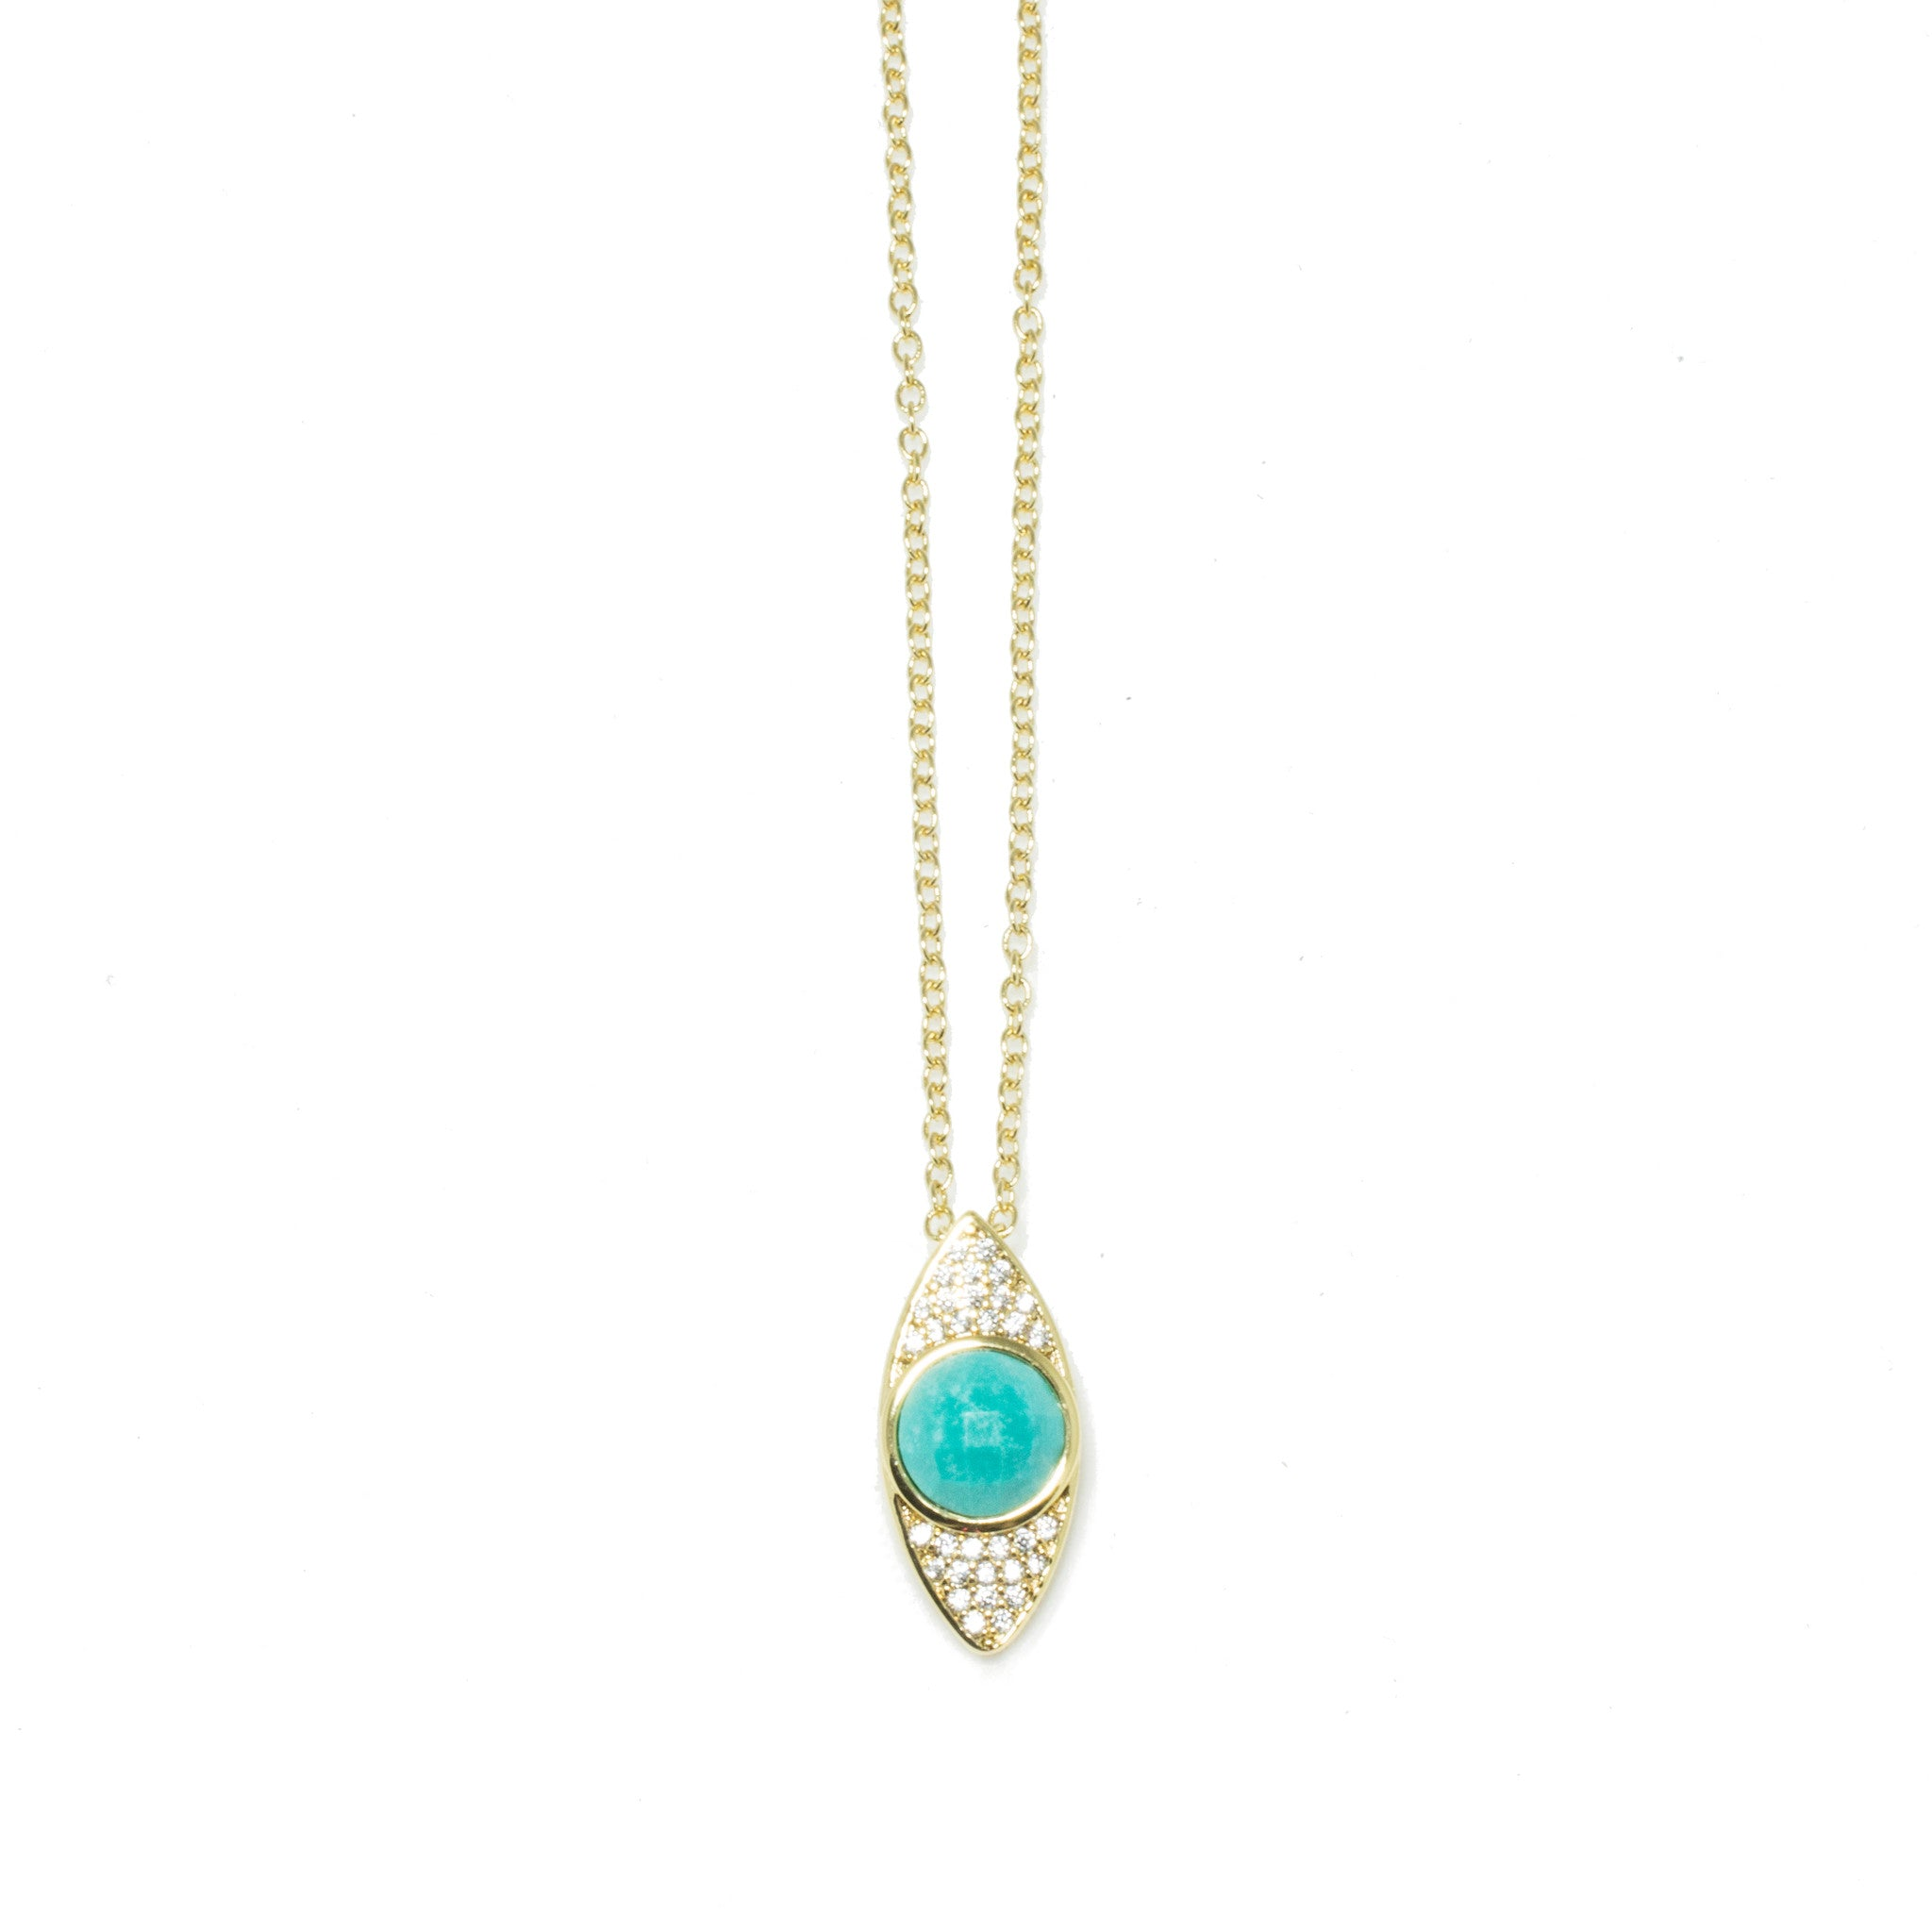 necklace auld melanie harris the here is jillian x collection ma finally adorned jh